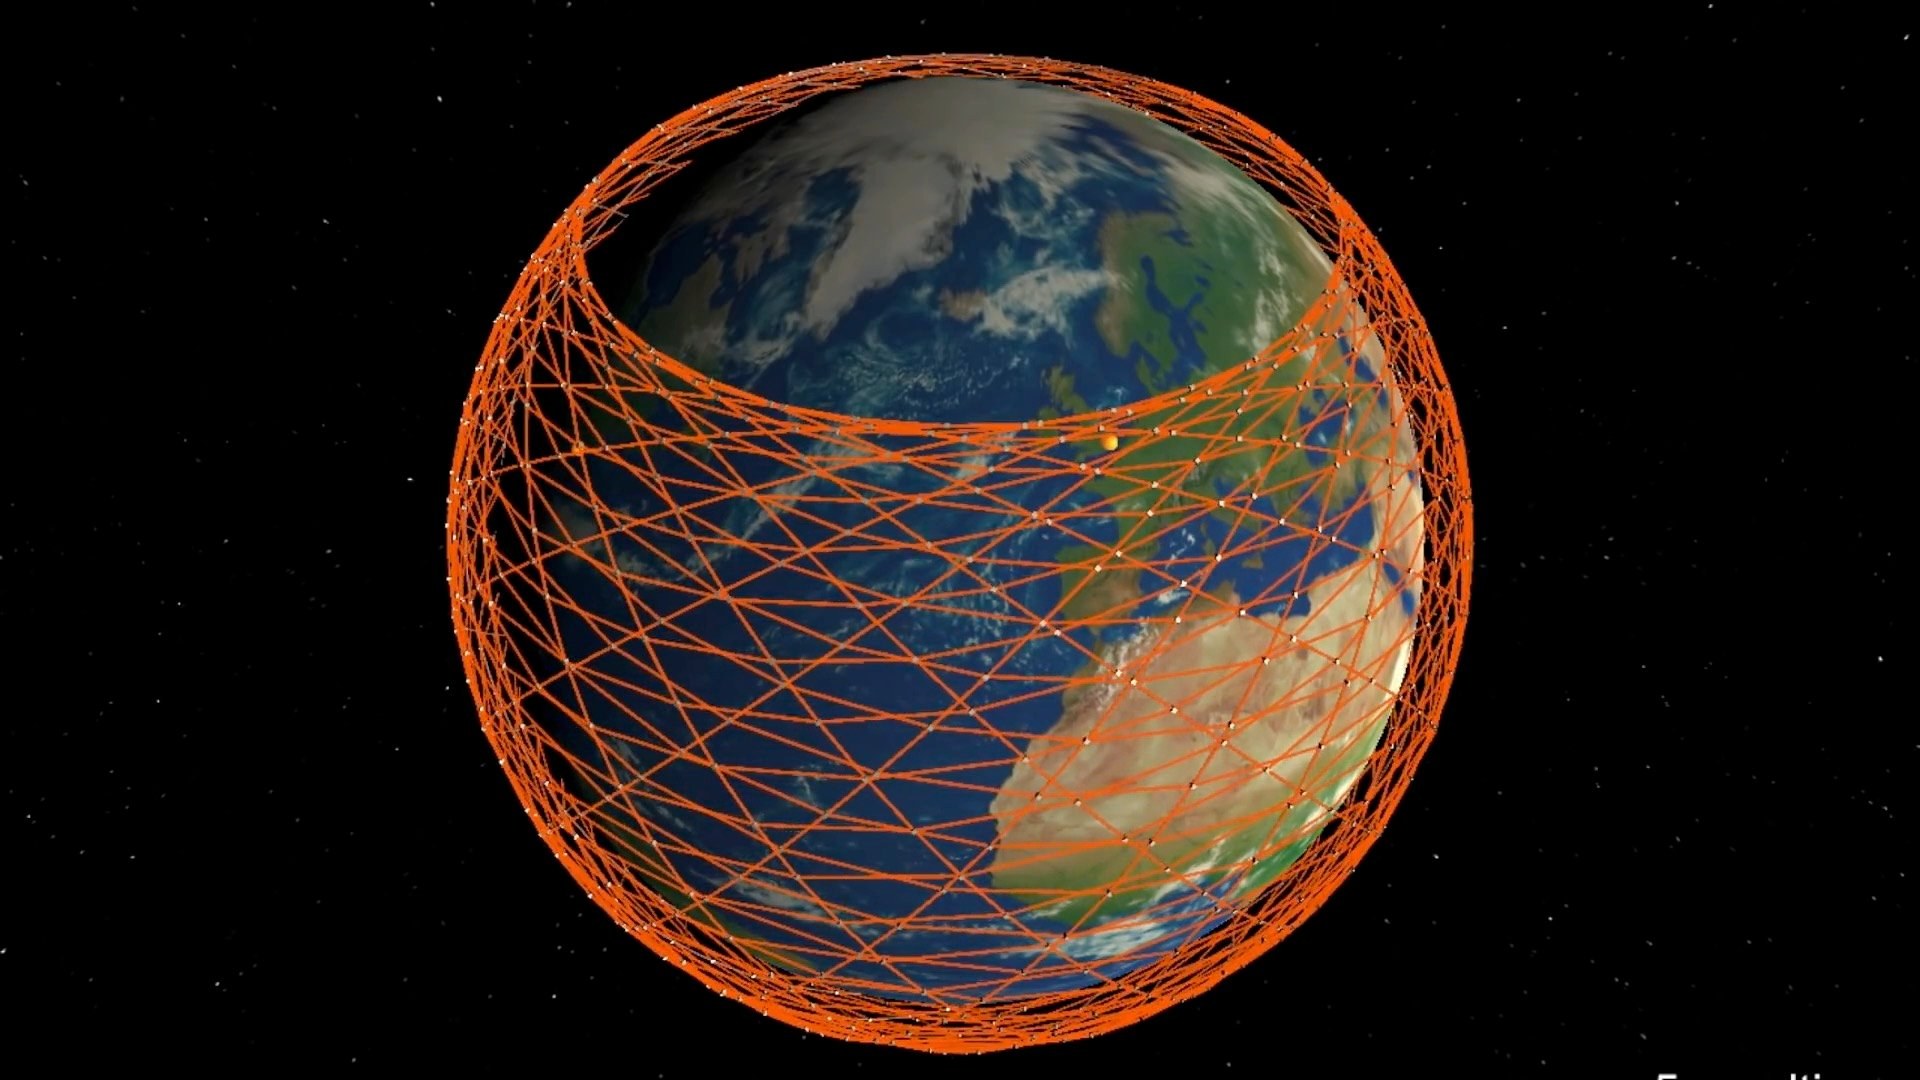 Elon Musk just revealed new details about Starlink, a plan to surround Earth with 12,000 high-speed internet satellites. Here's how it might work. 89